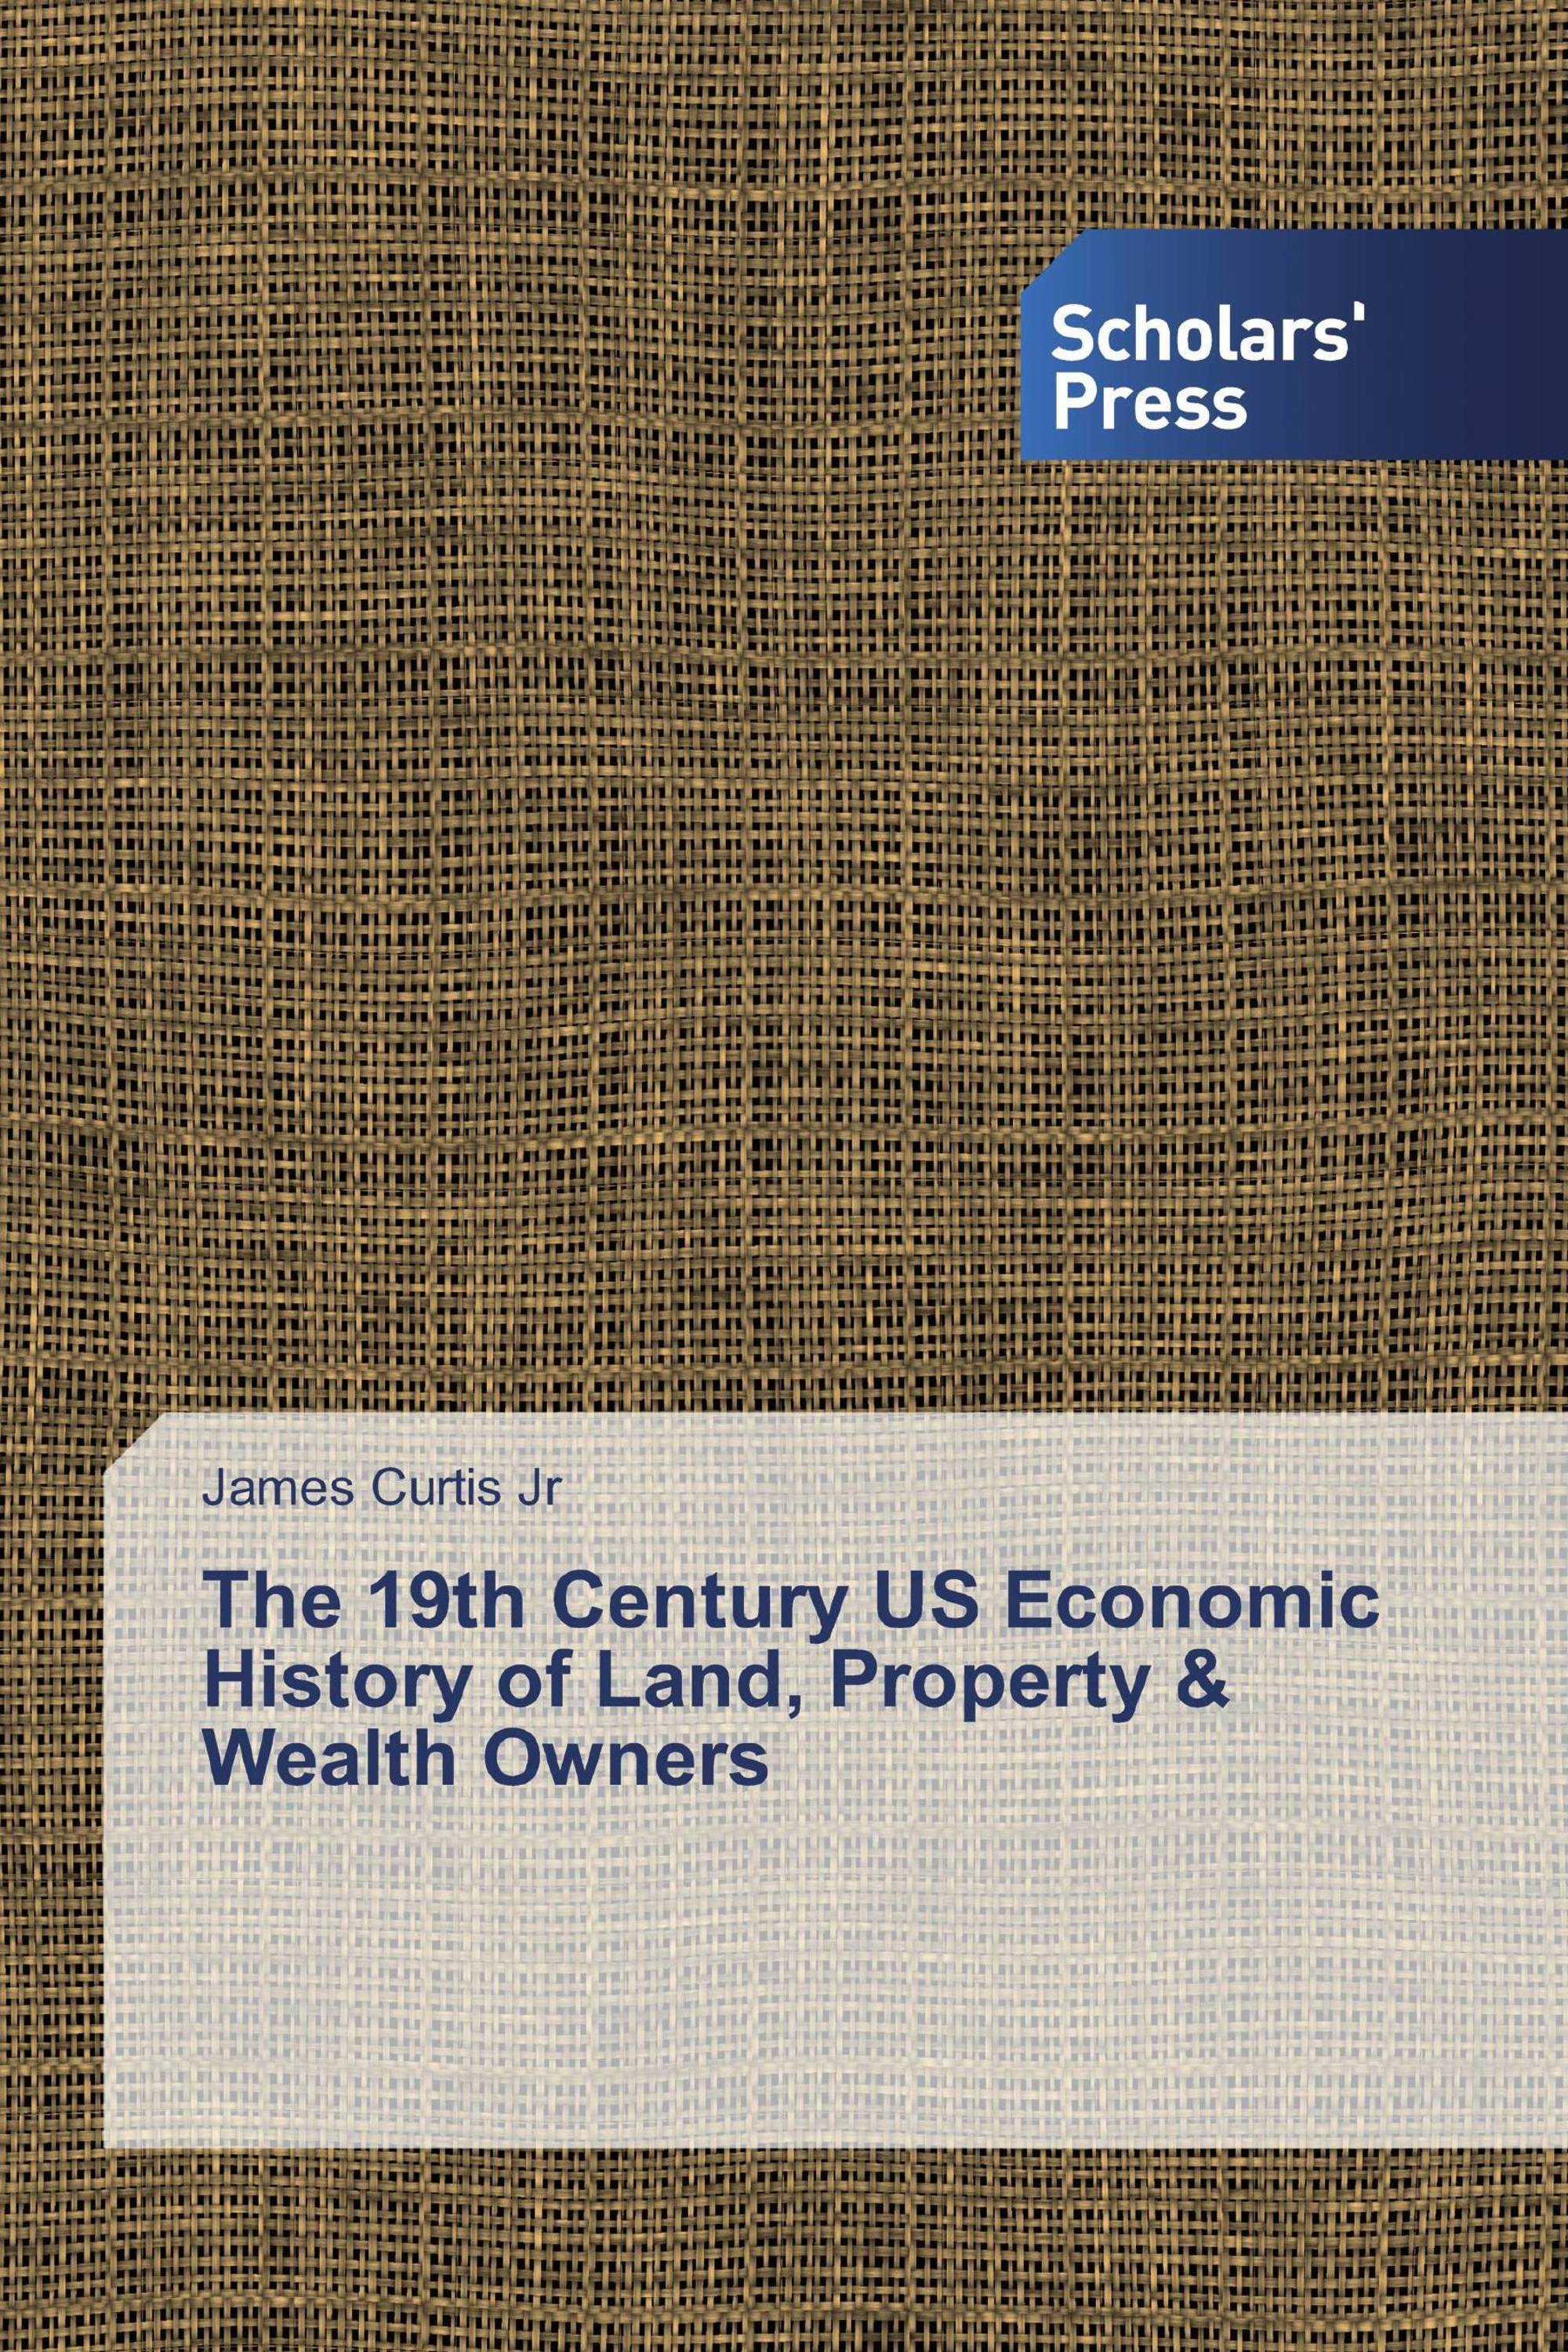 The 19th Century US Economic History of Land, Property & Wealth Owners